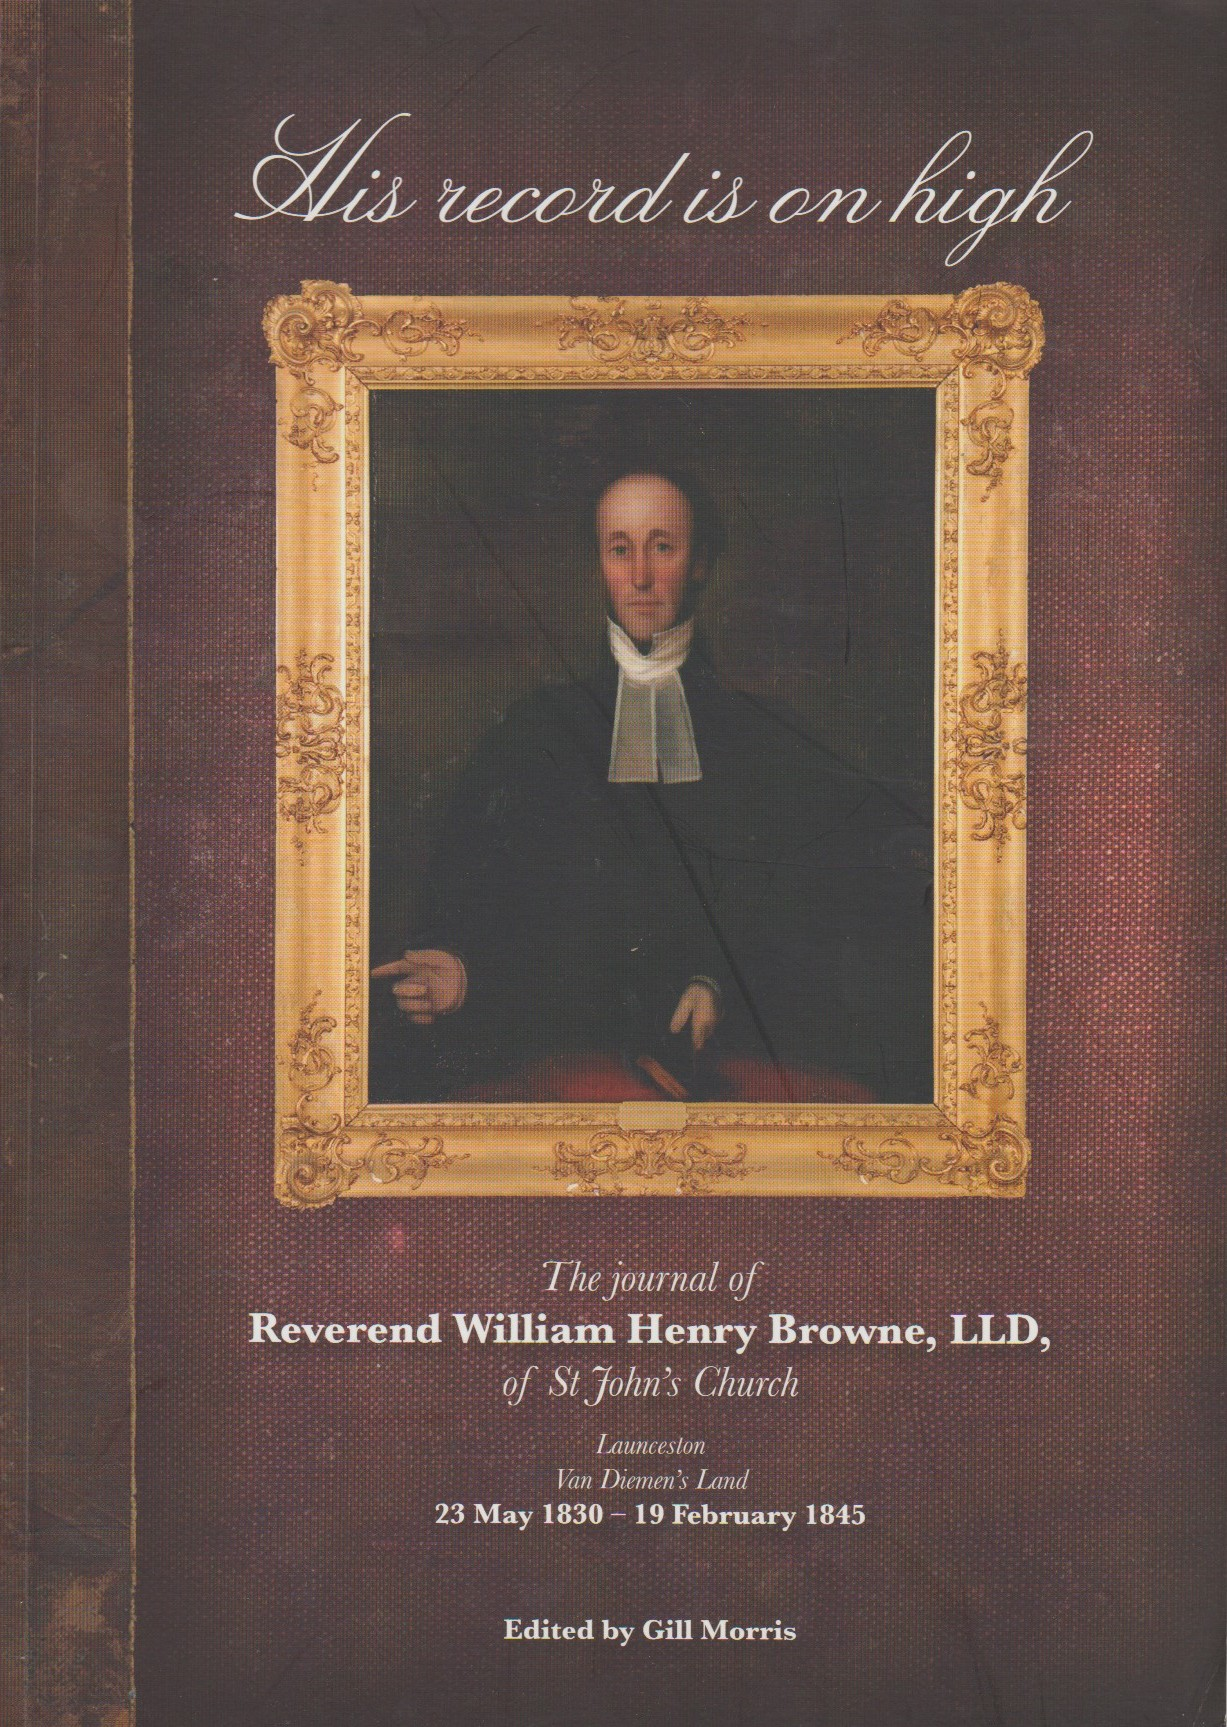 His Record is on High - Rev William Henry Browne St John's Church, Launceston